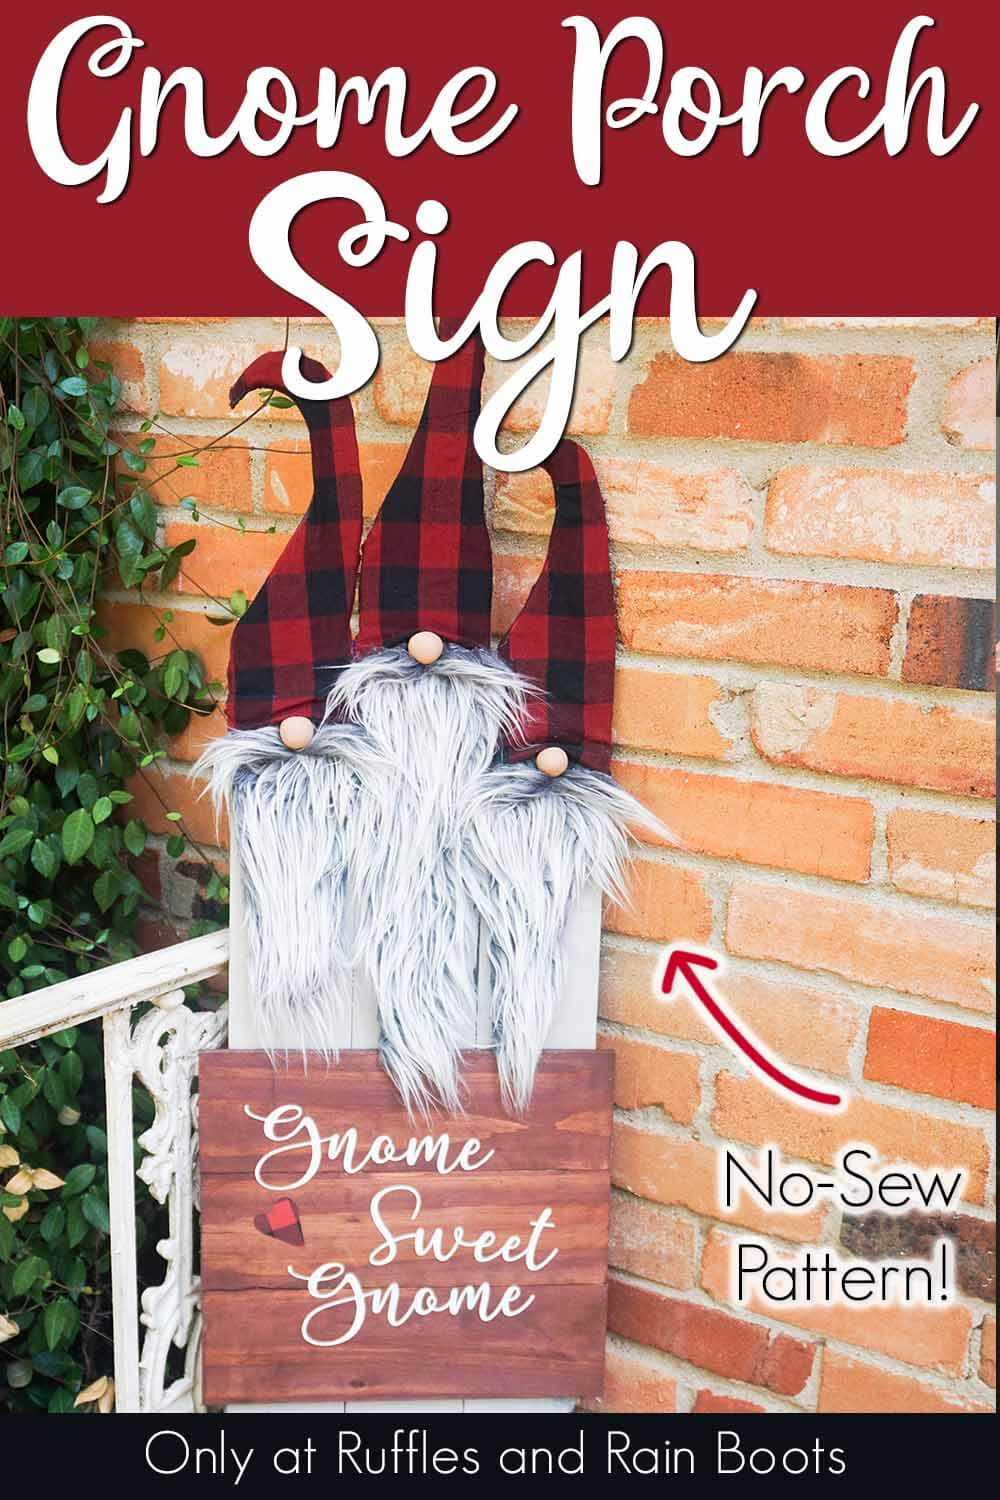 easy gnome shaped porch sign leaning against a brick wall with text which reads gnome porch sign no-sew pattern